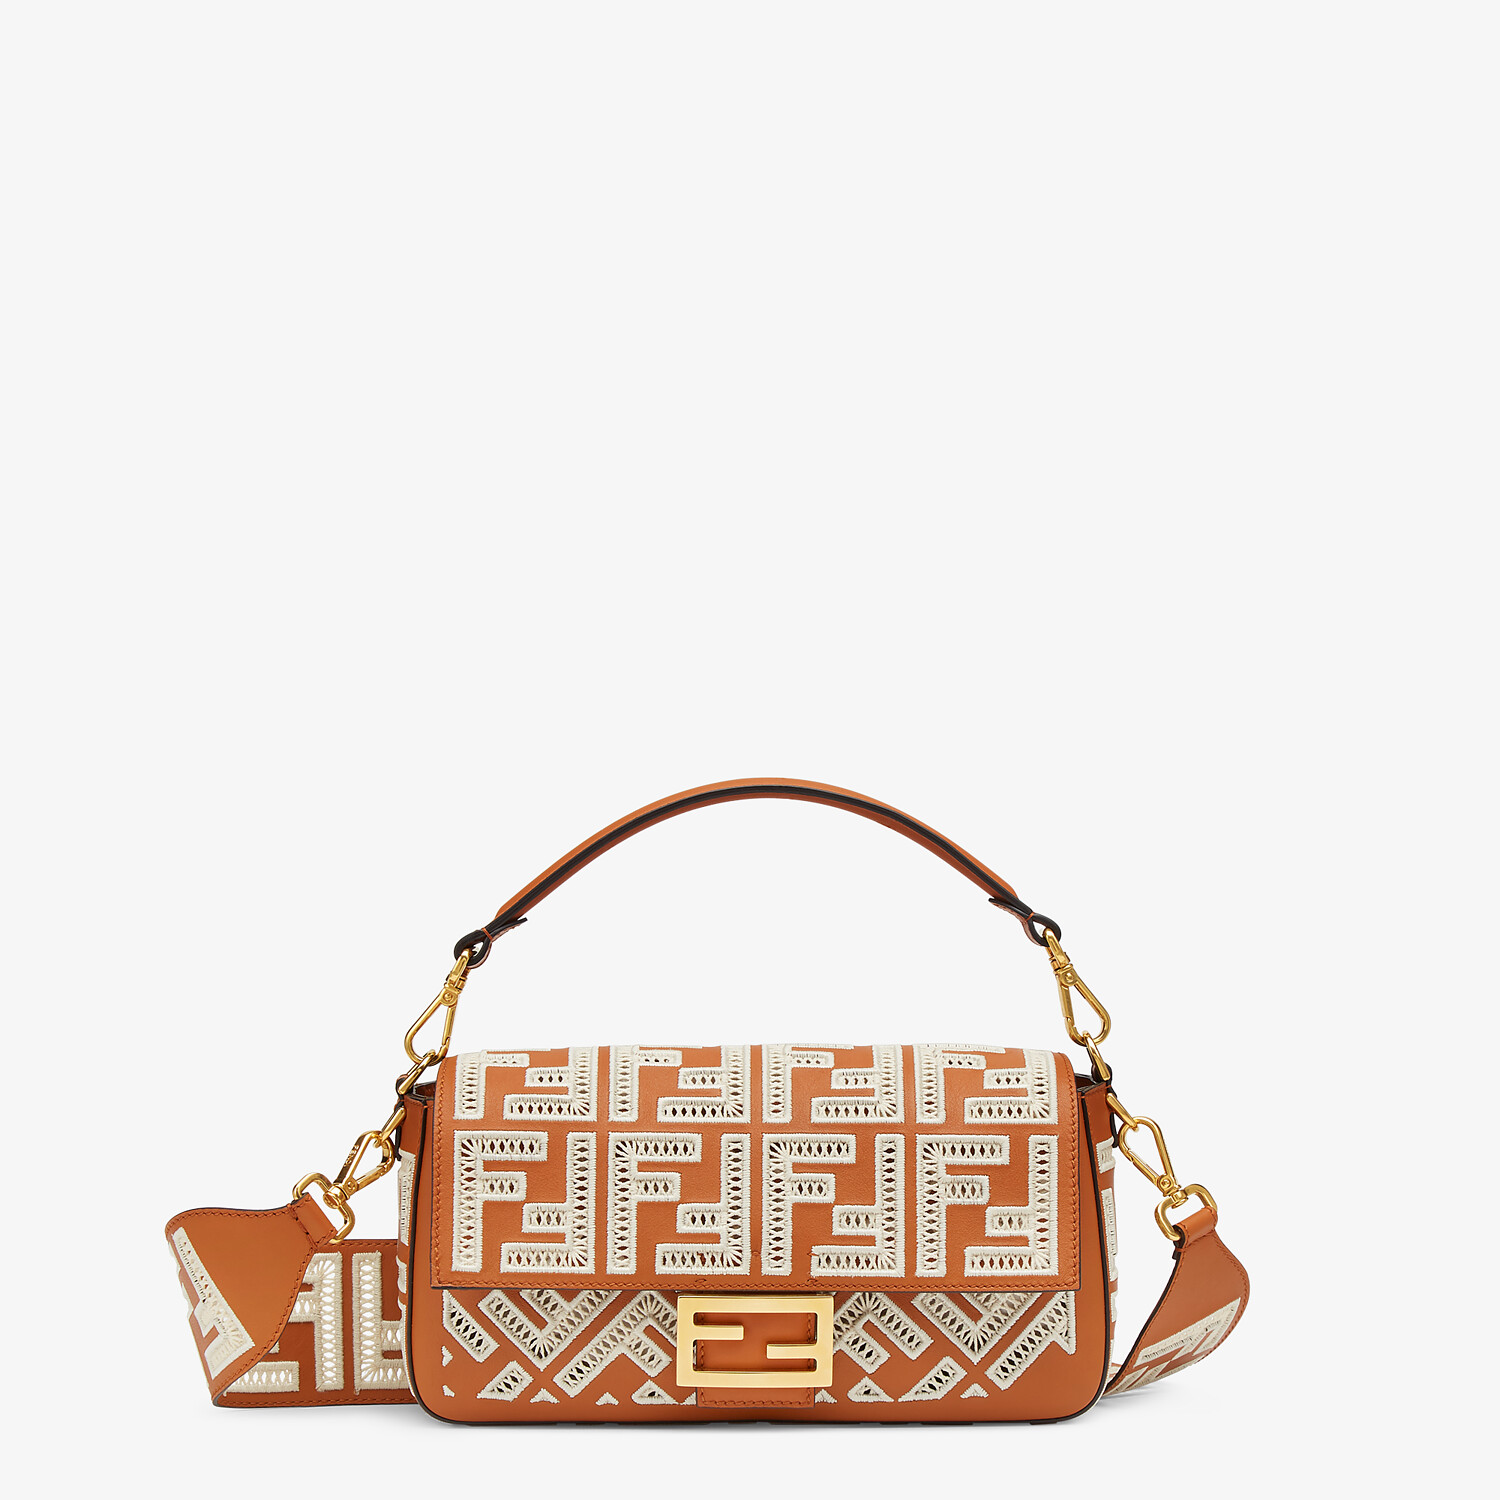 FENDI BAGUETTE - Brown leather bag with FF embroidery - view 1 detail